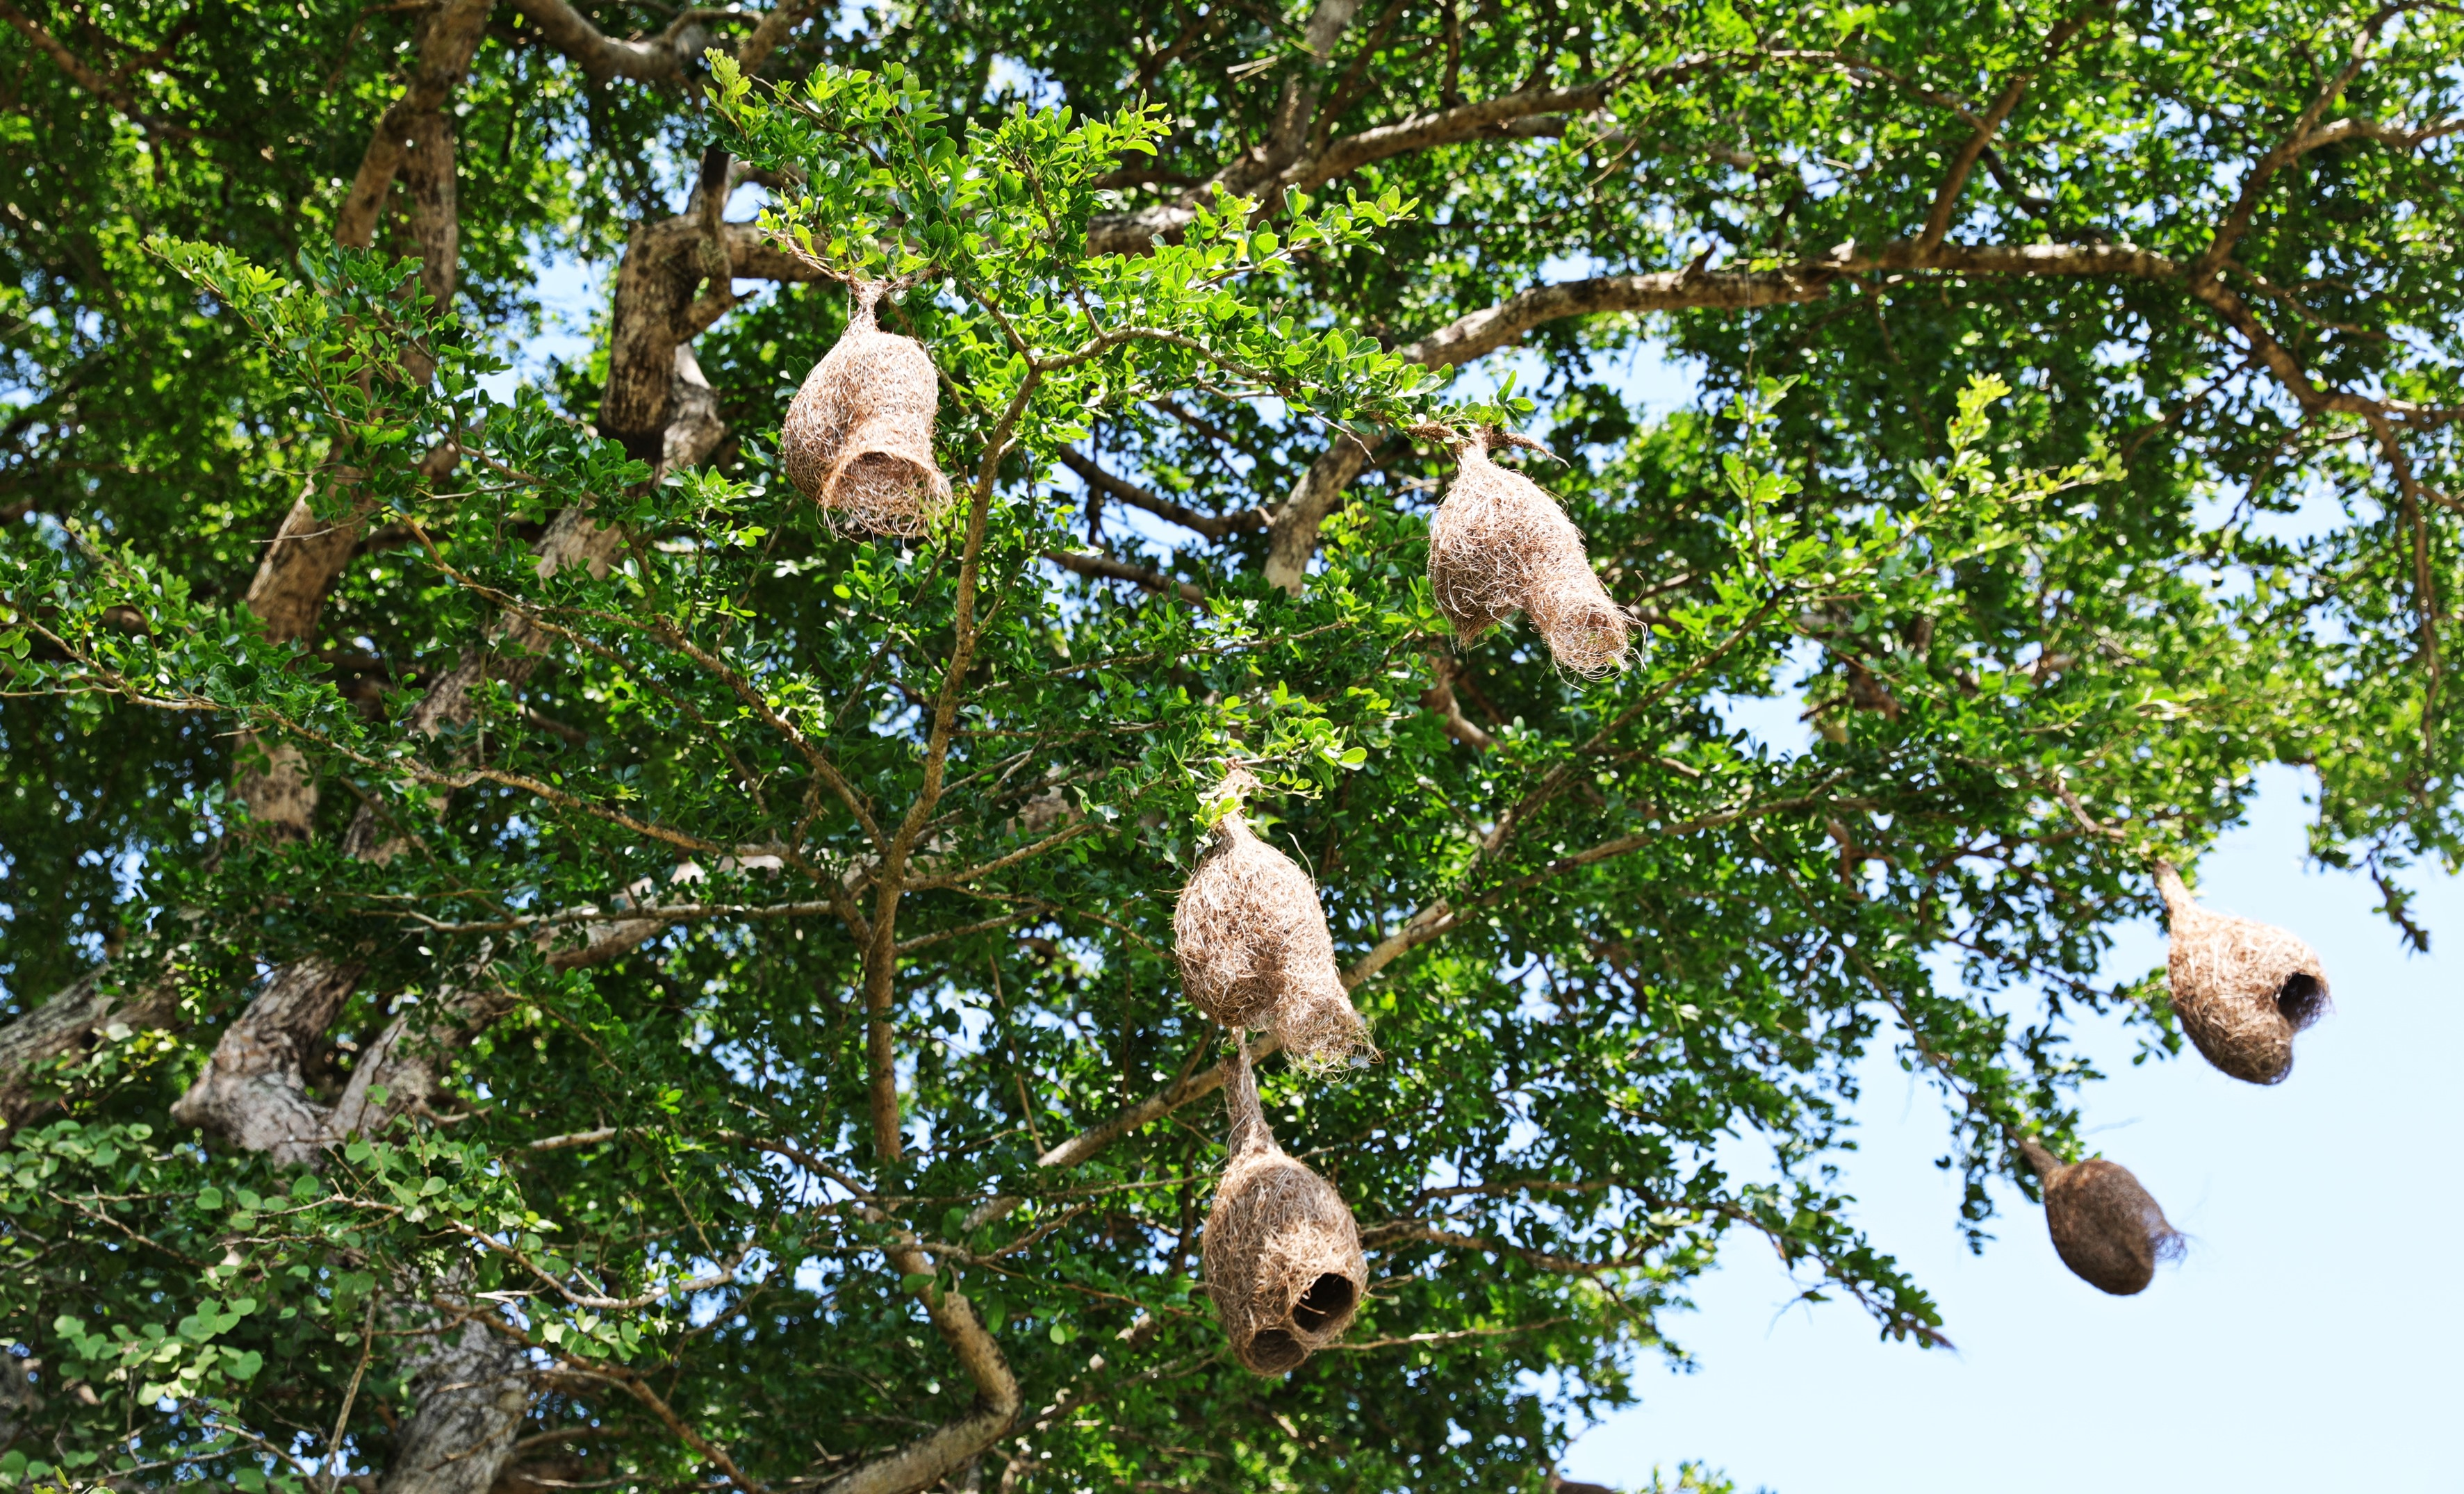 Weaver's nests, Arugam Bay